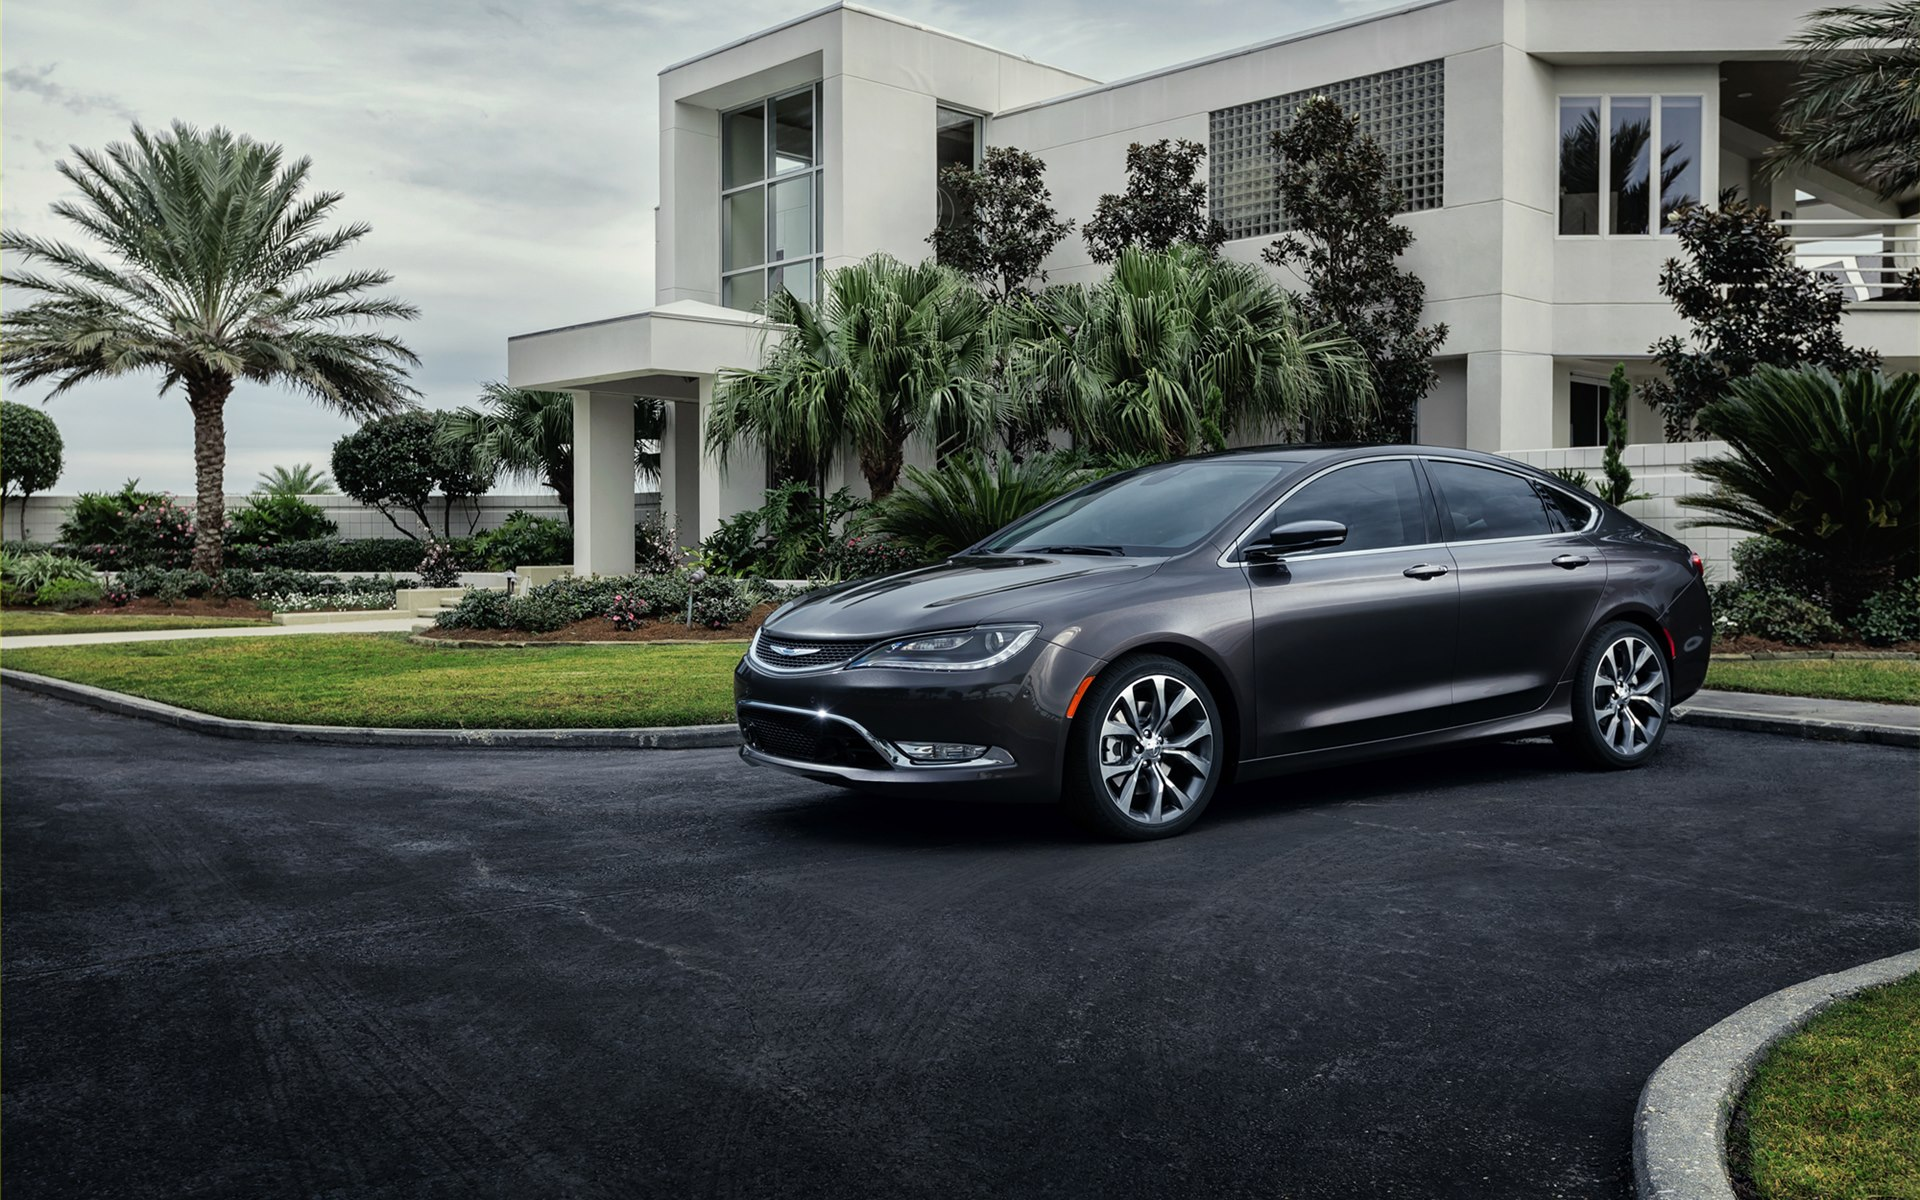 Chrysler 200 Background Hd Wallpaper Get Download 2015 Chrysler 1920x1200